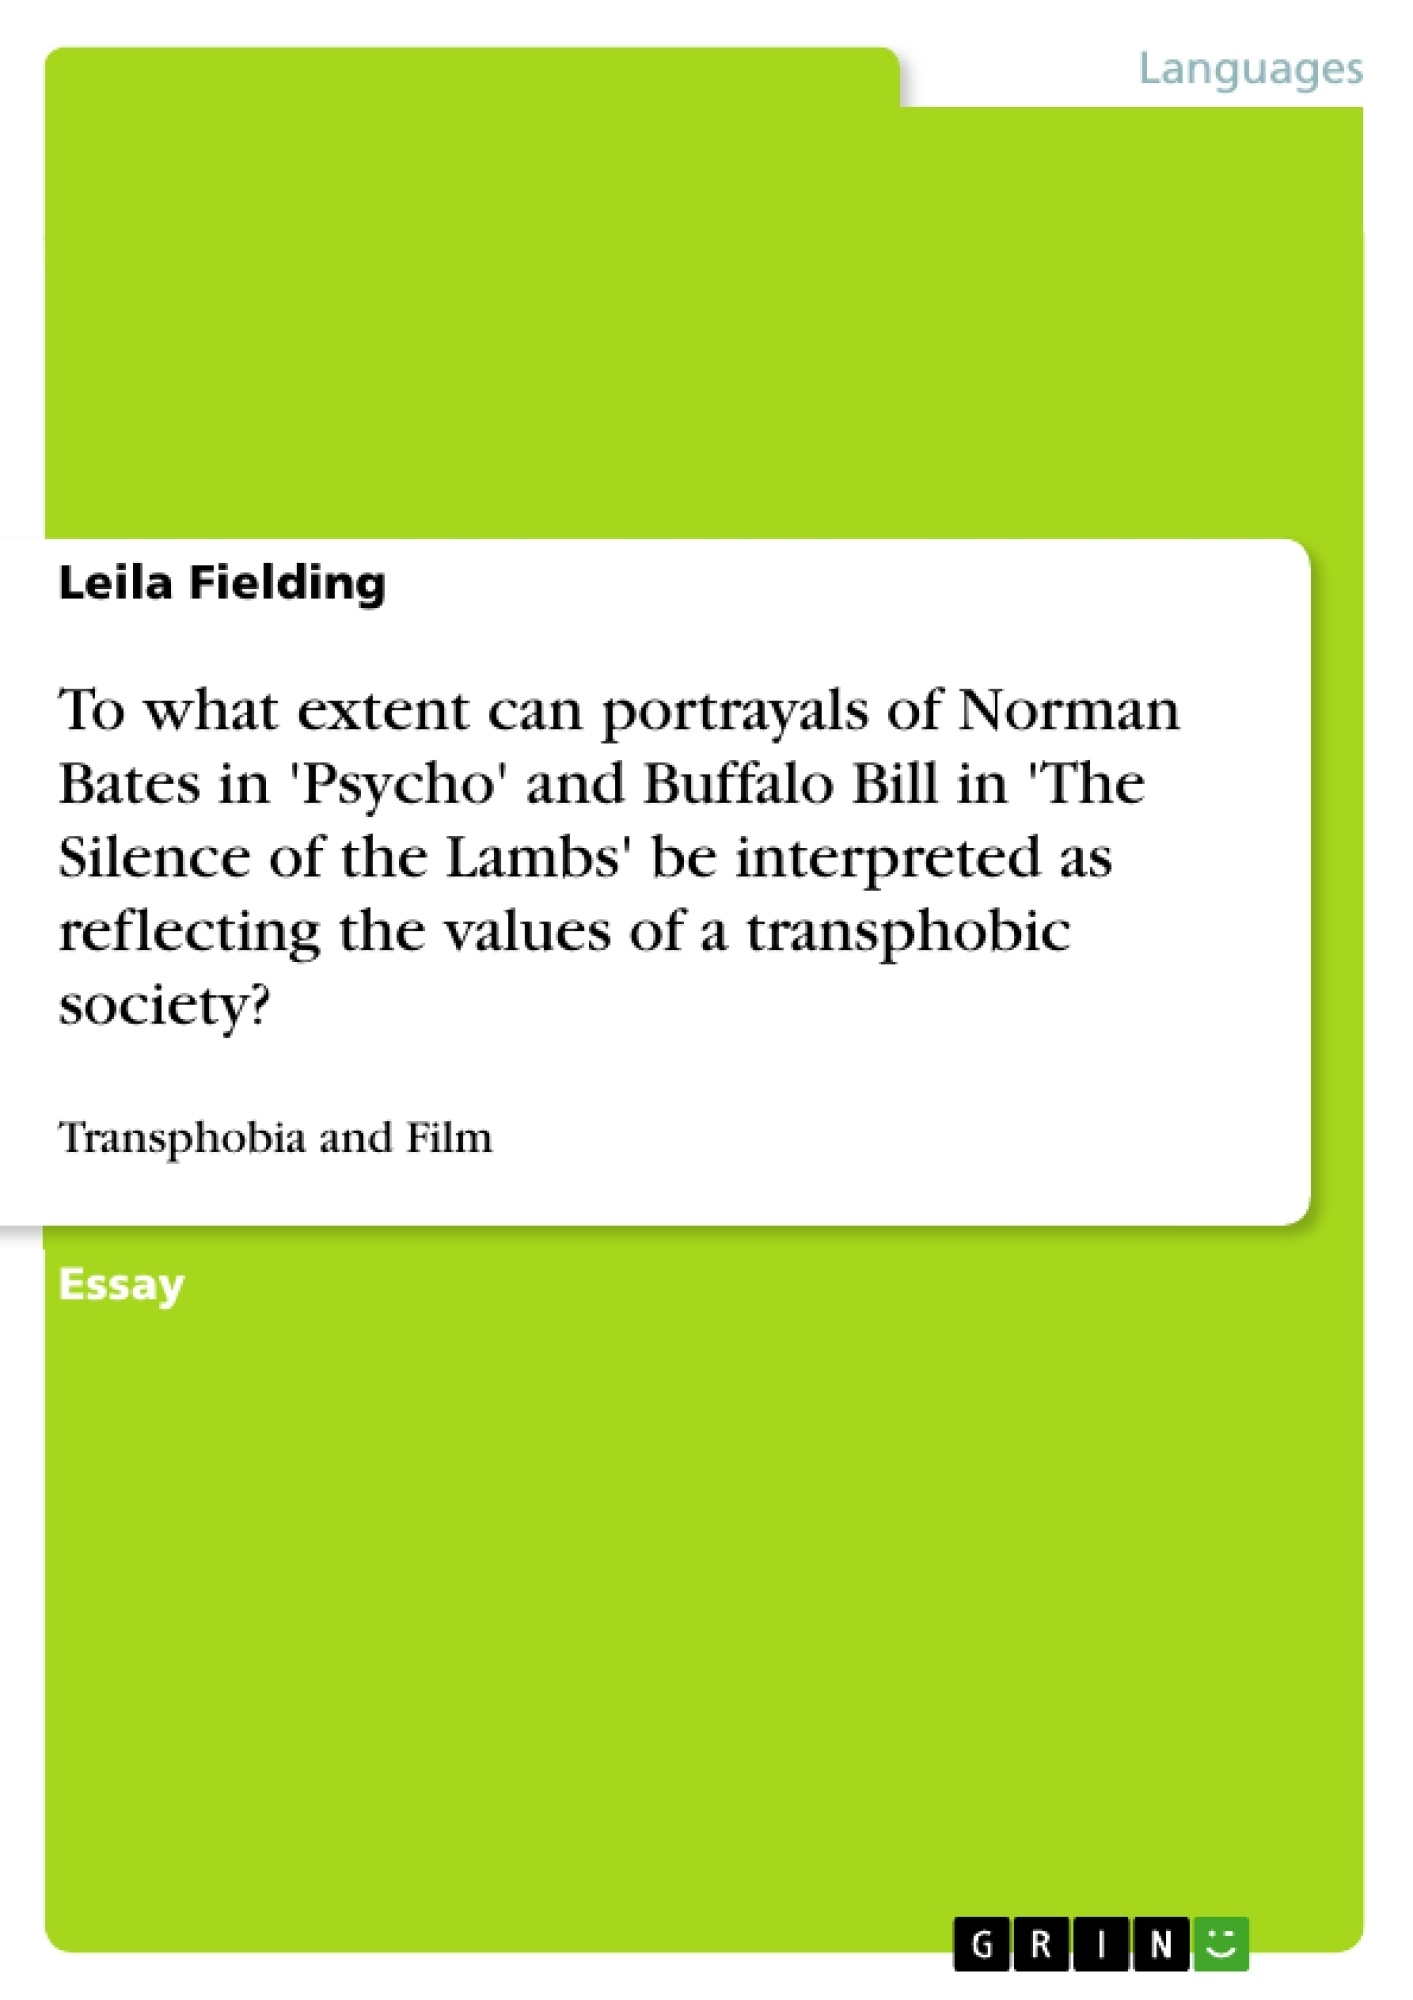 Title: To what extent can portrayals of Norman Bates in 'Psycho' and Buffalo Bill in 'The Silence of the Lambs' be interpreted as reflecting the values of a transphobic society?